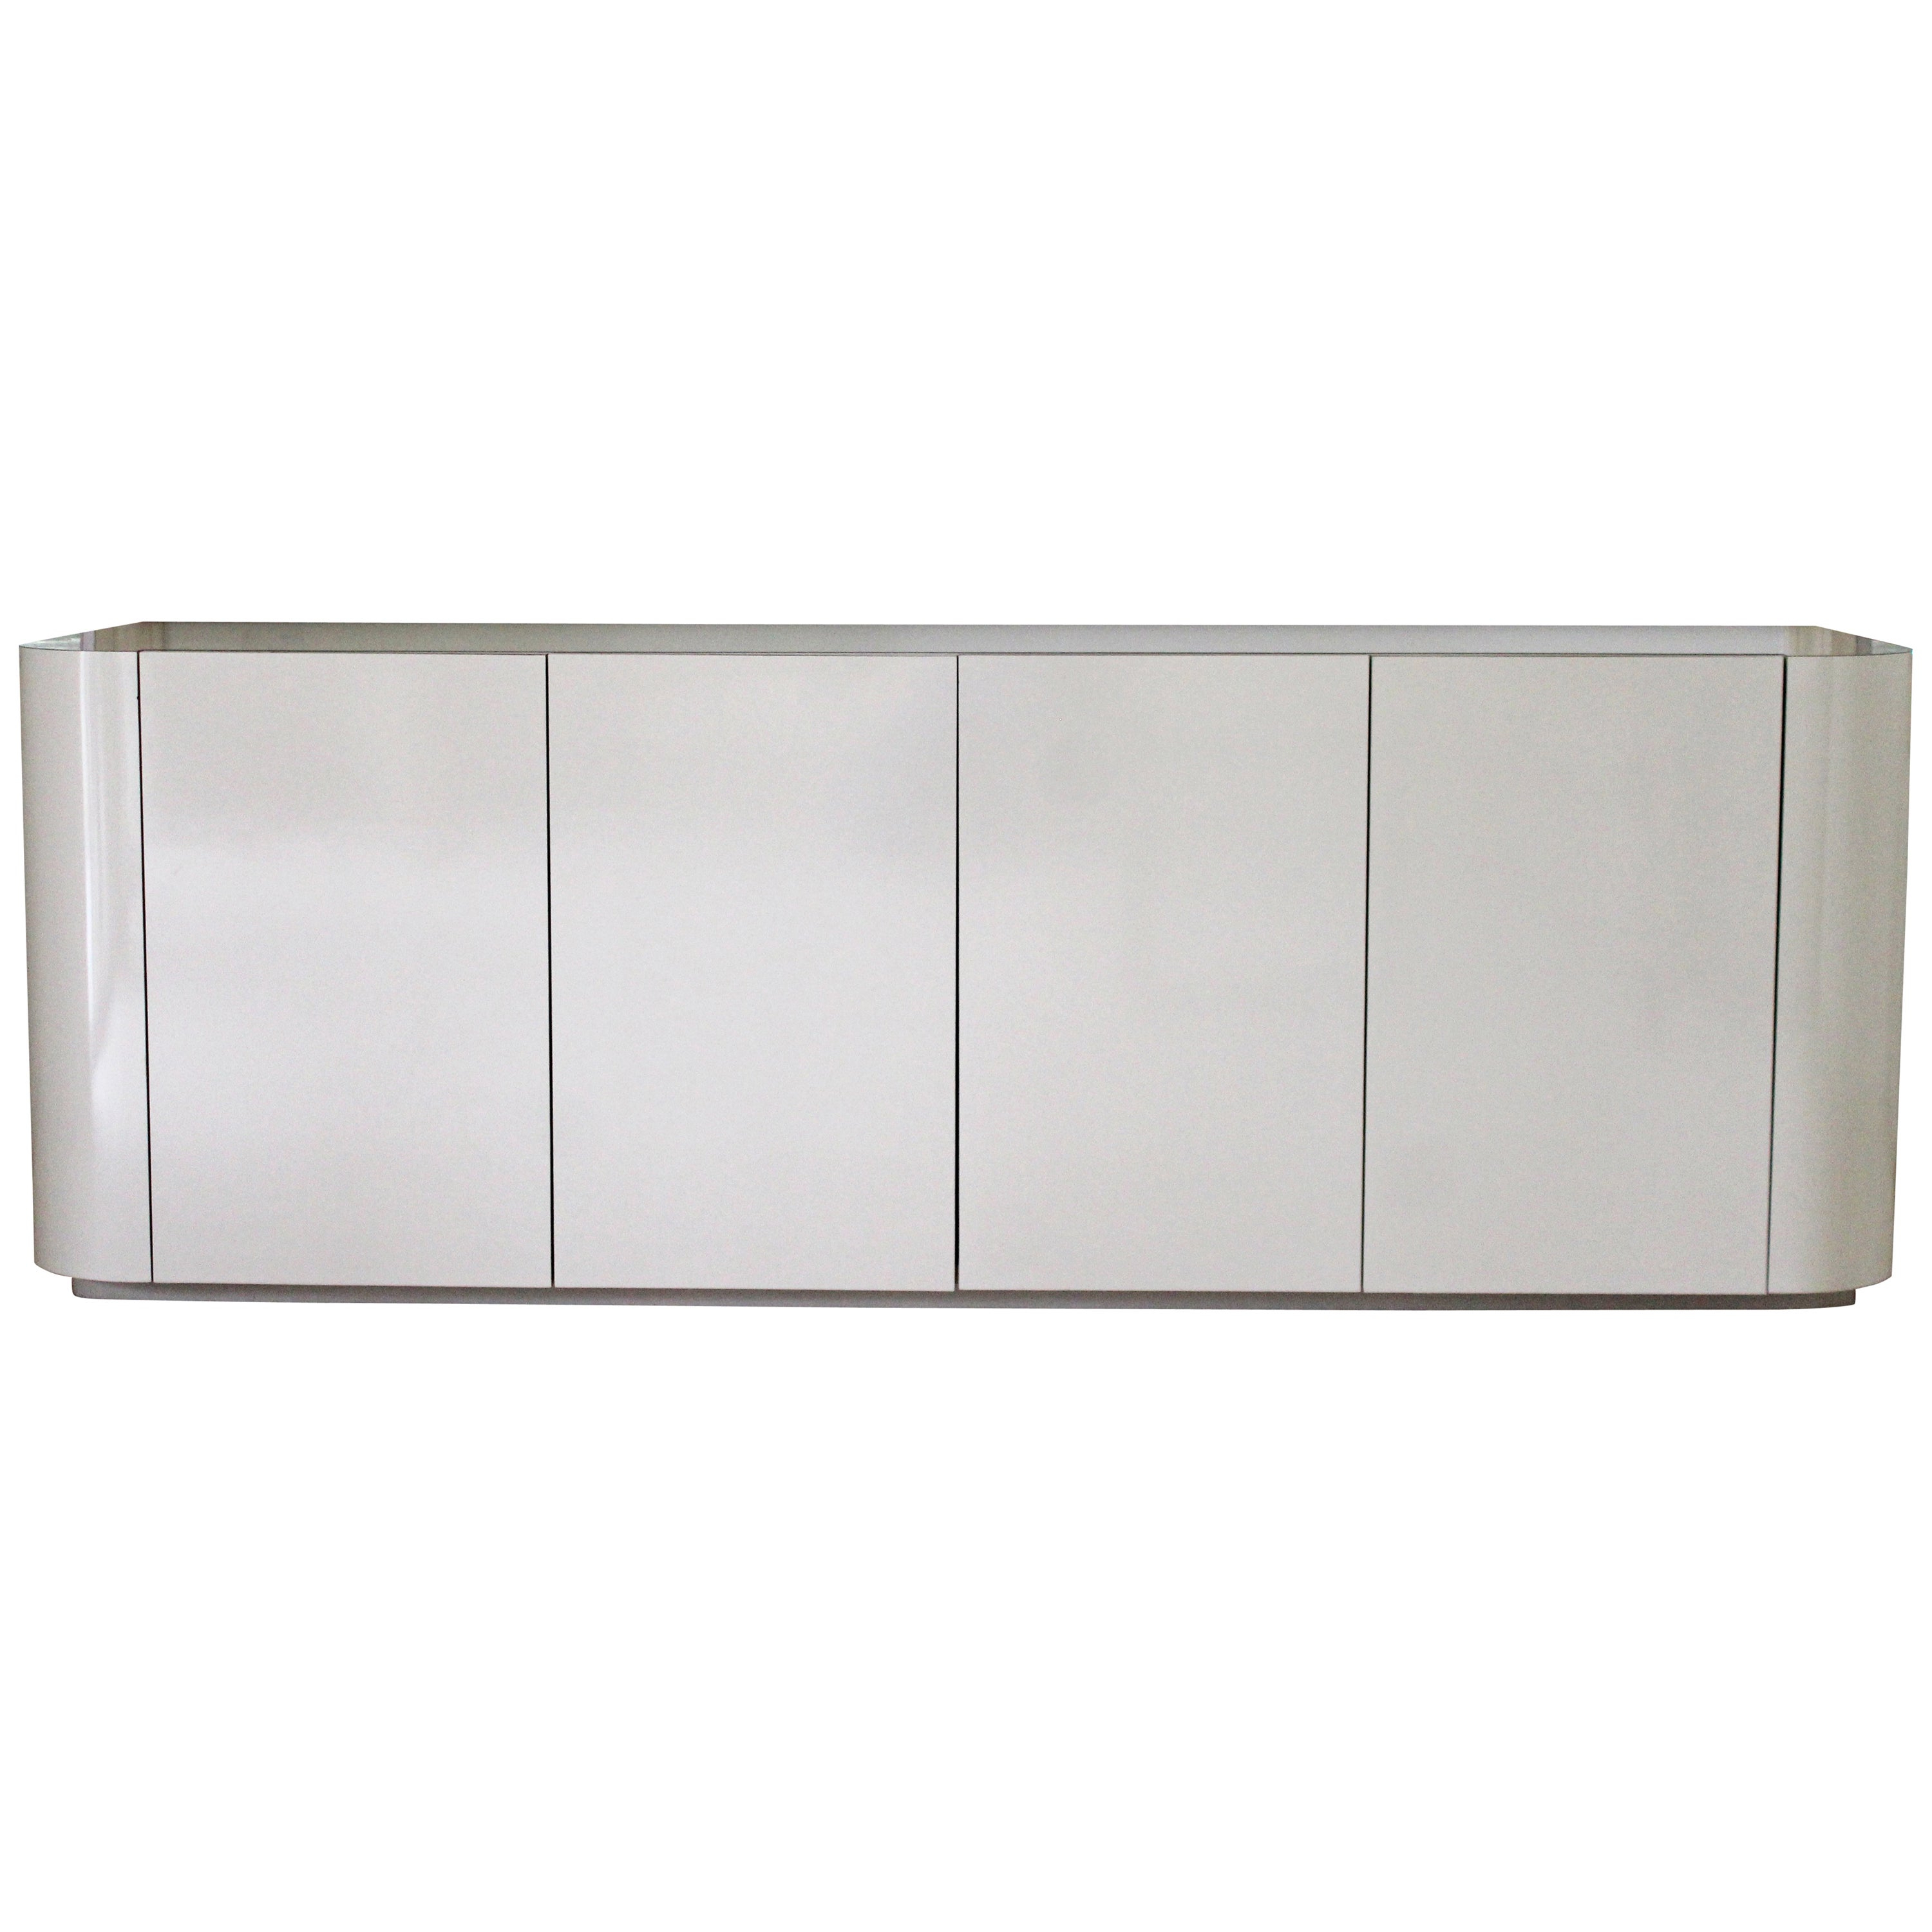 Abhinav Credenzas Pertaining To Current White Credenza Cabinet (View 4 of 20)